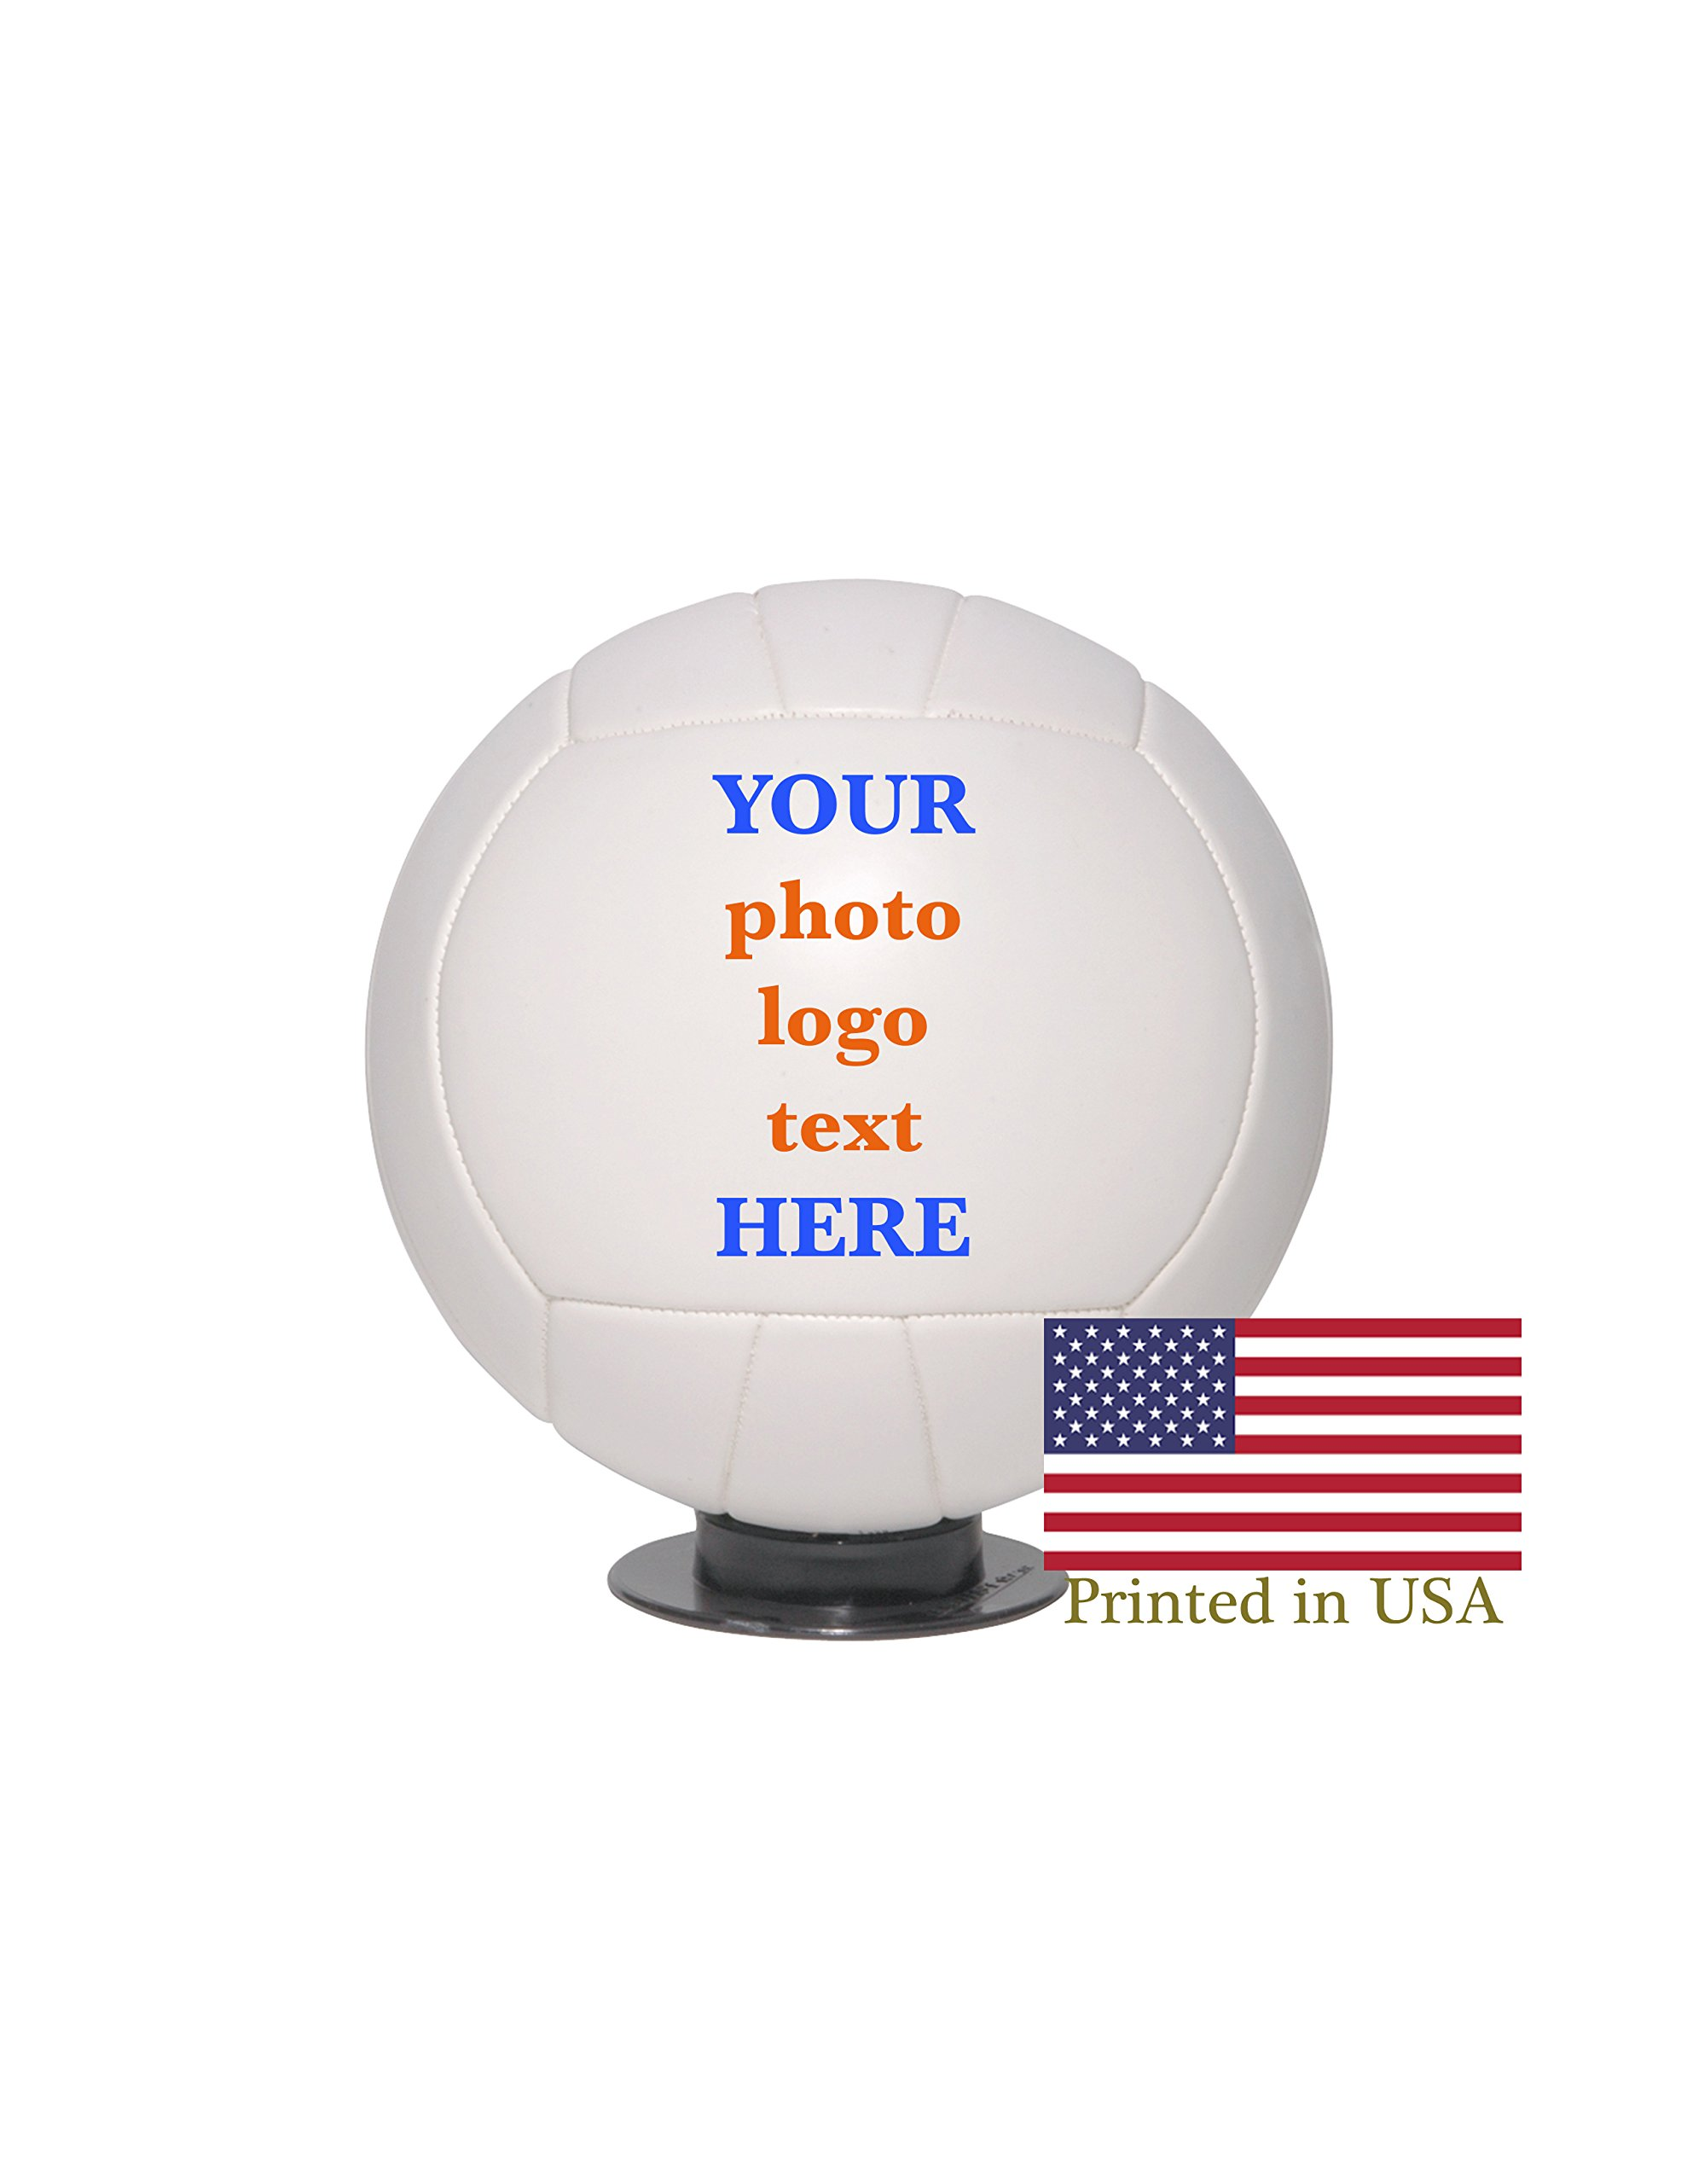 Custom Personalized Volleyball Ships in 1 Day, High Resolution Photos, Logos & Text on Volleyball Balls Players, Trophies, MVP Awards, Coaches, Personalized Gifts